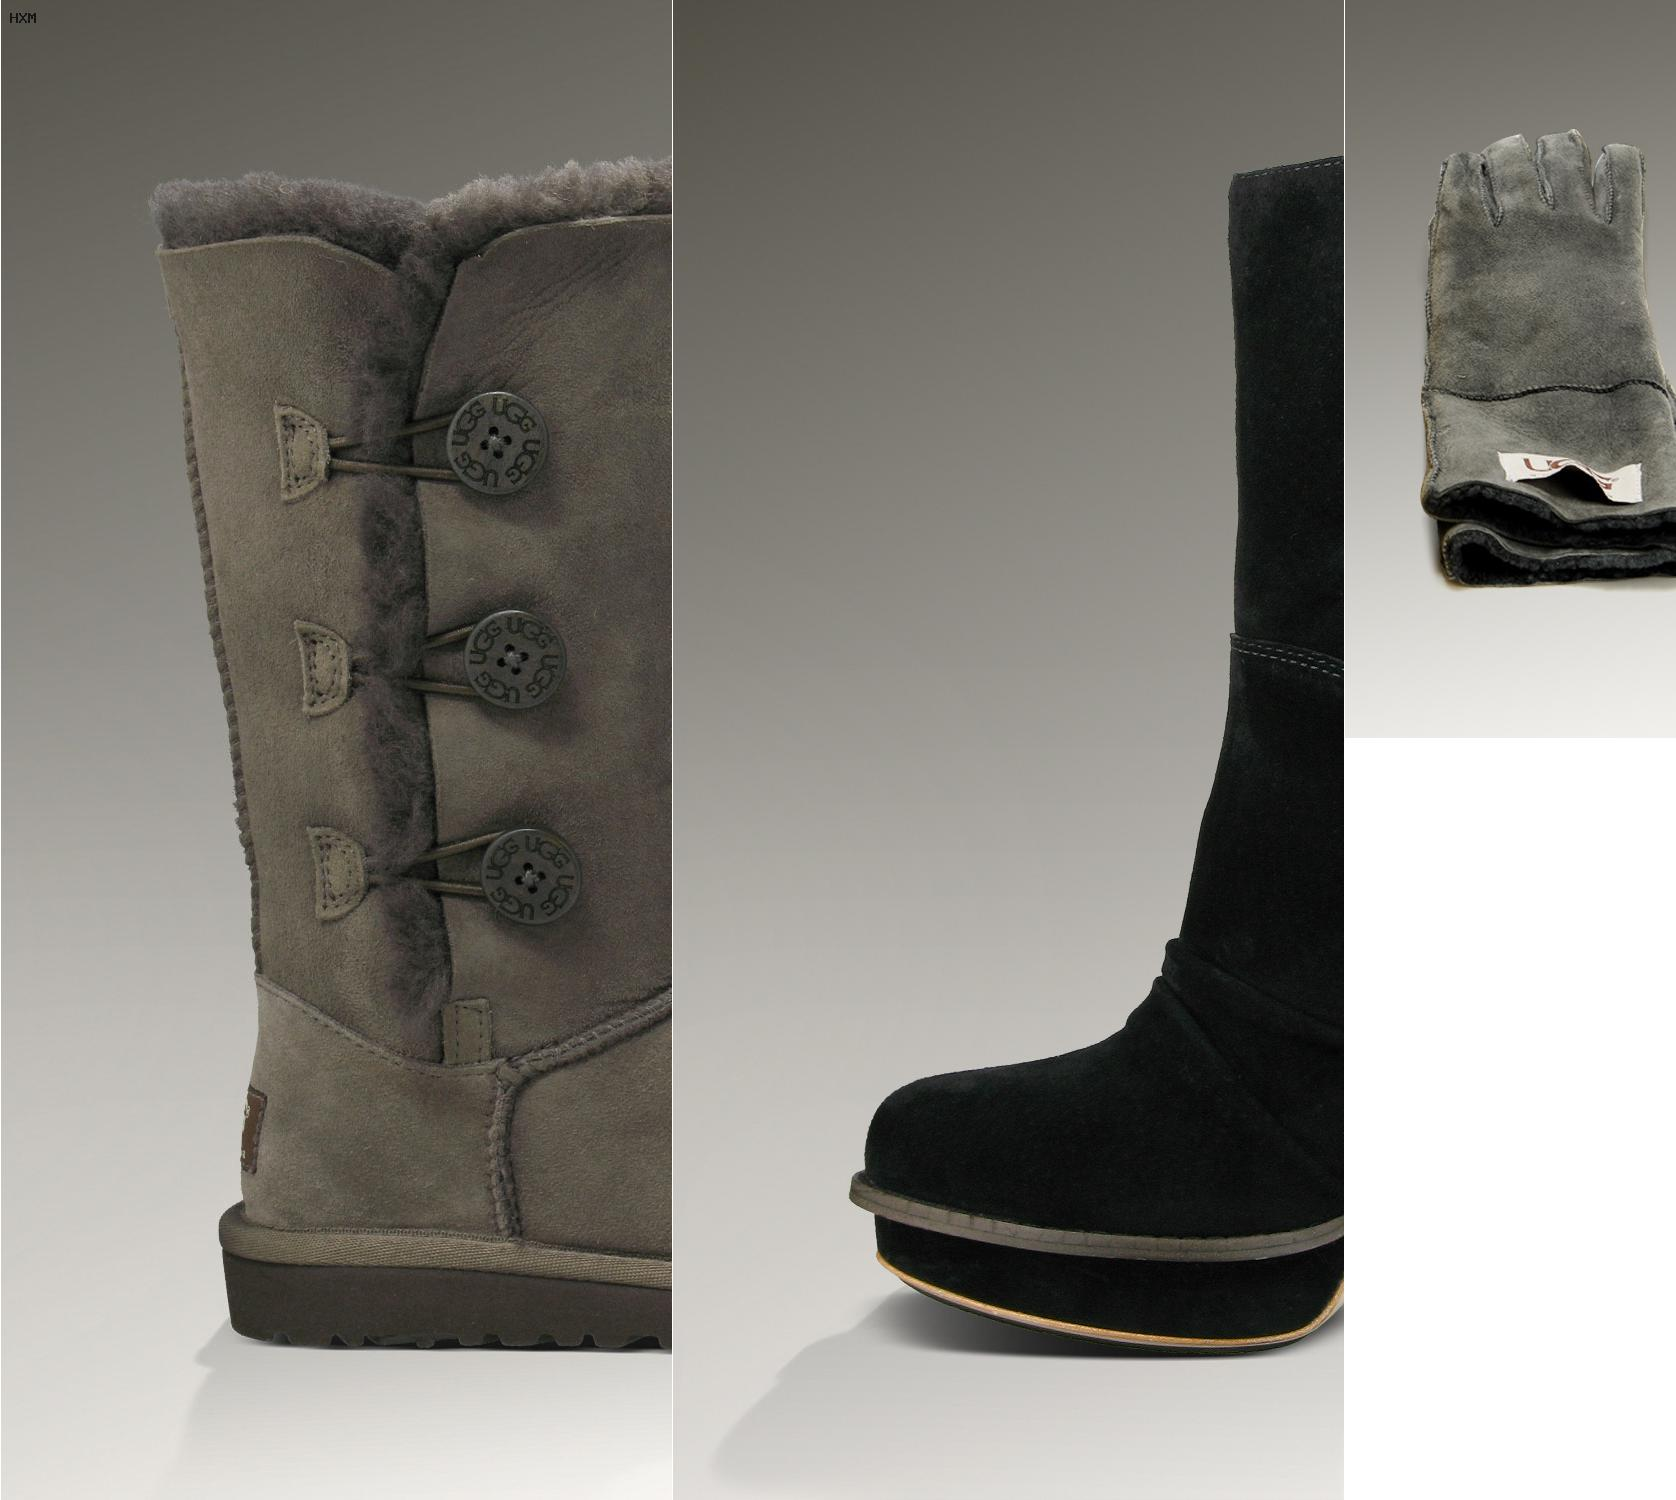 ugg bailey bow grau billig